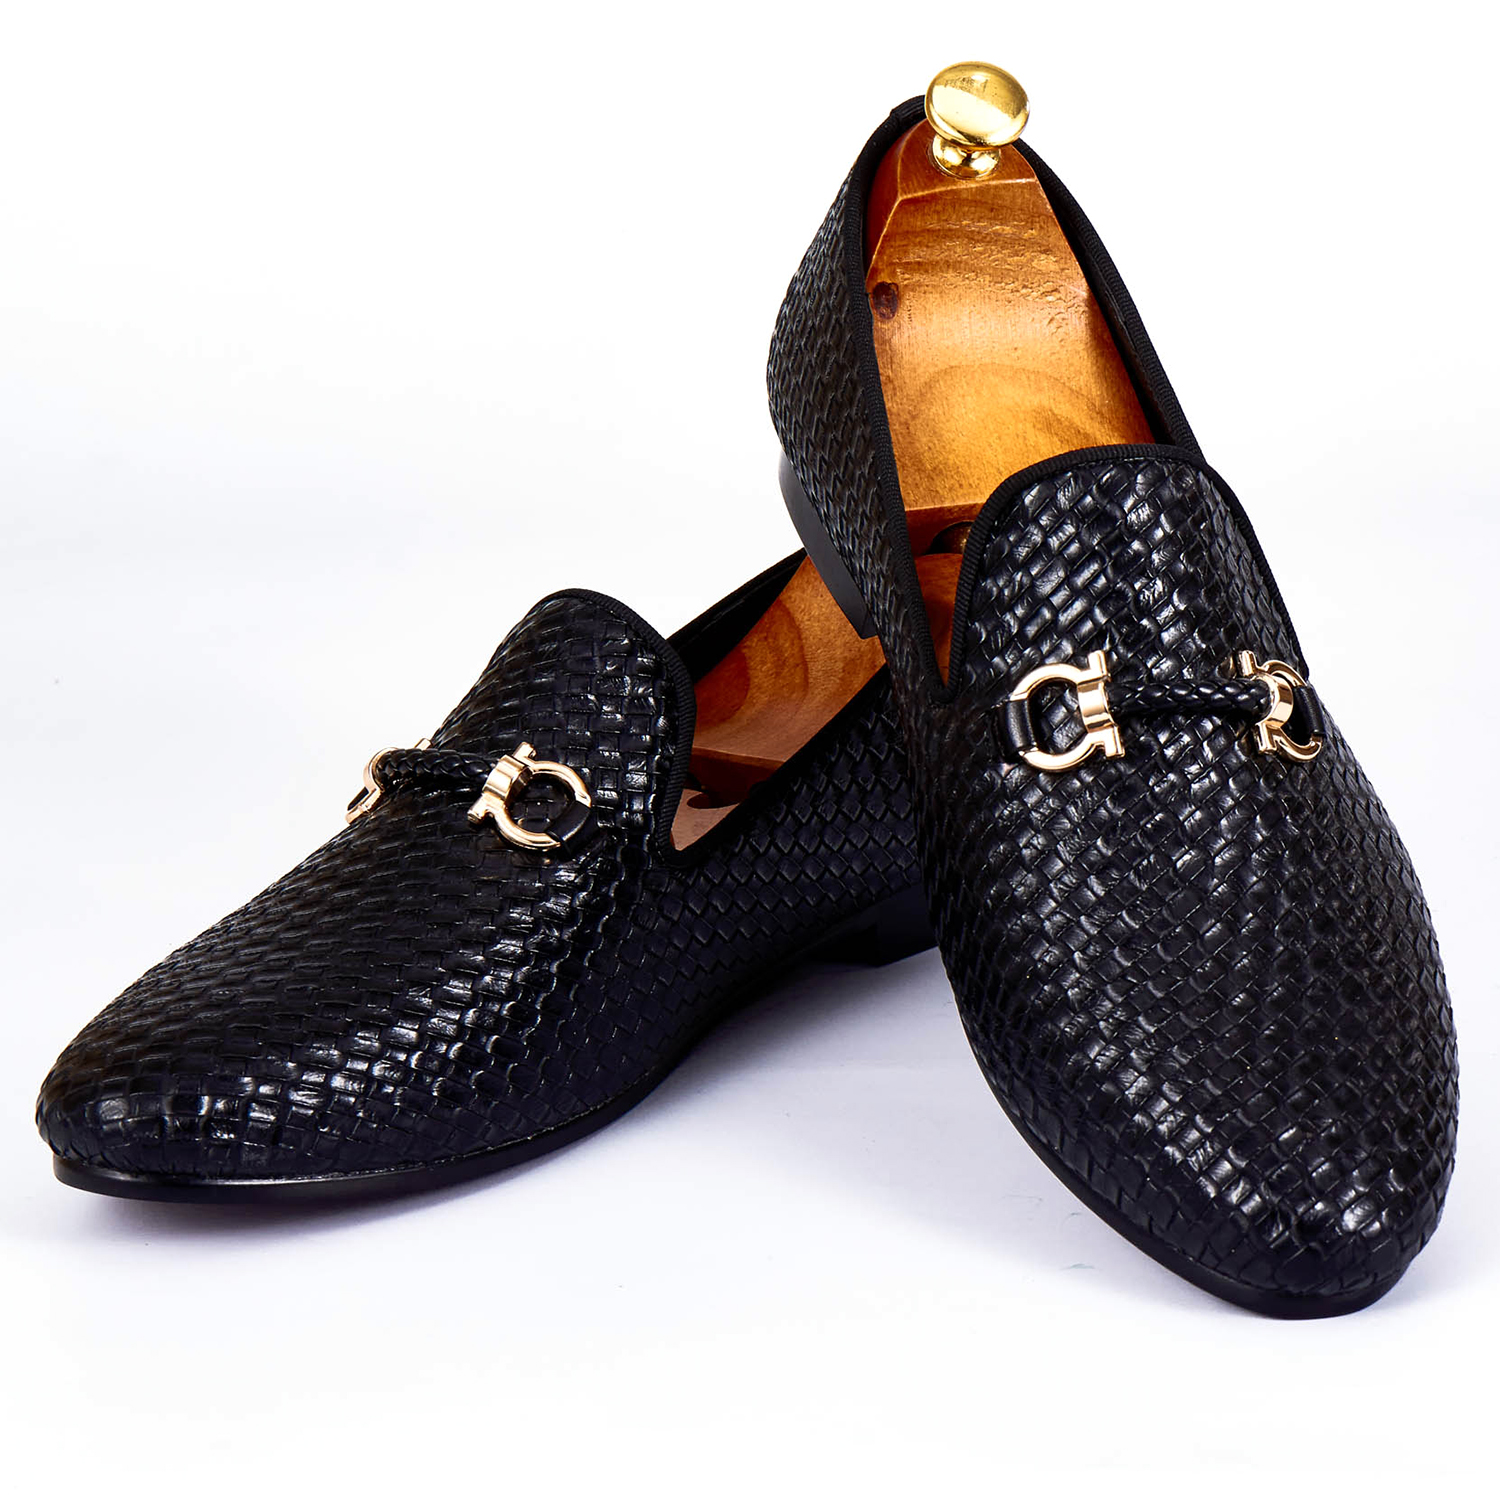 Harpelunde Men Dress Shoes Woven Leather Black Wedding Shoes Buckle Strap Flats Size 7-1 ...